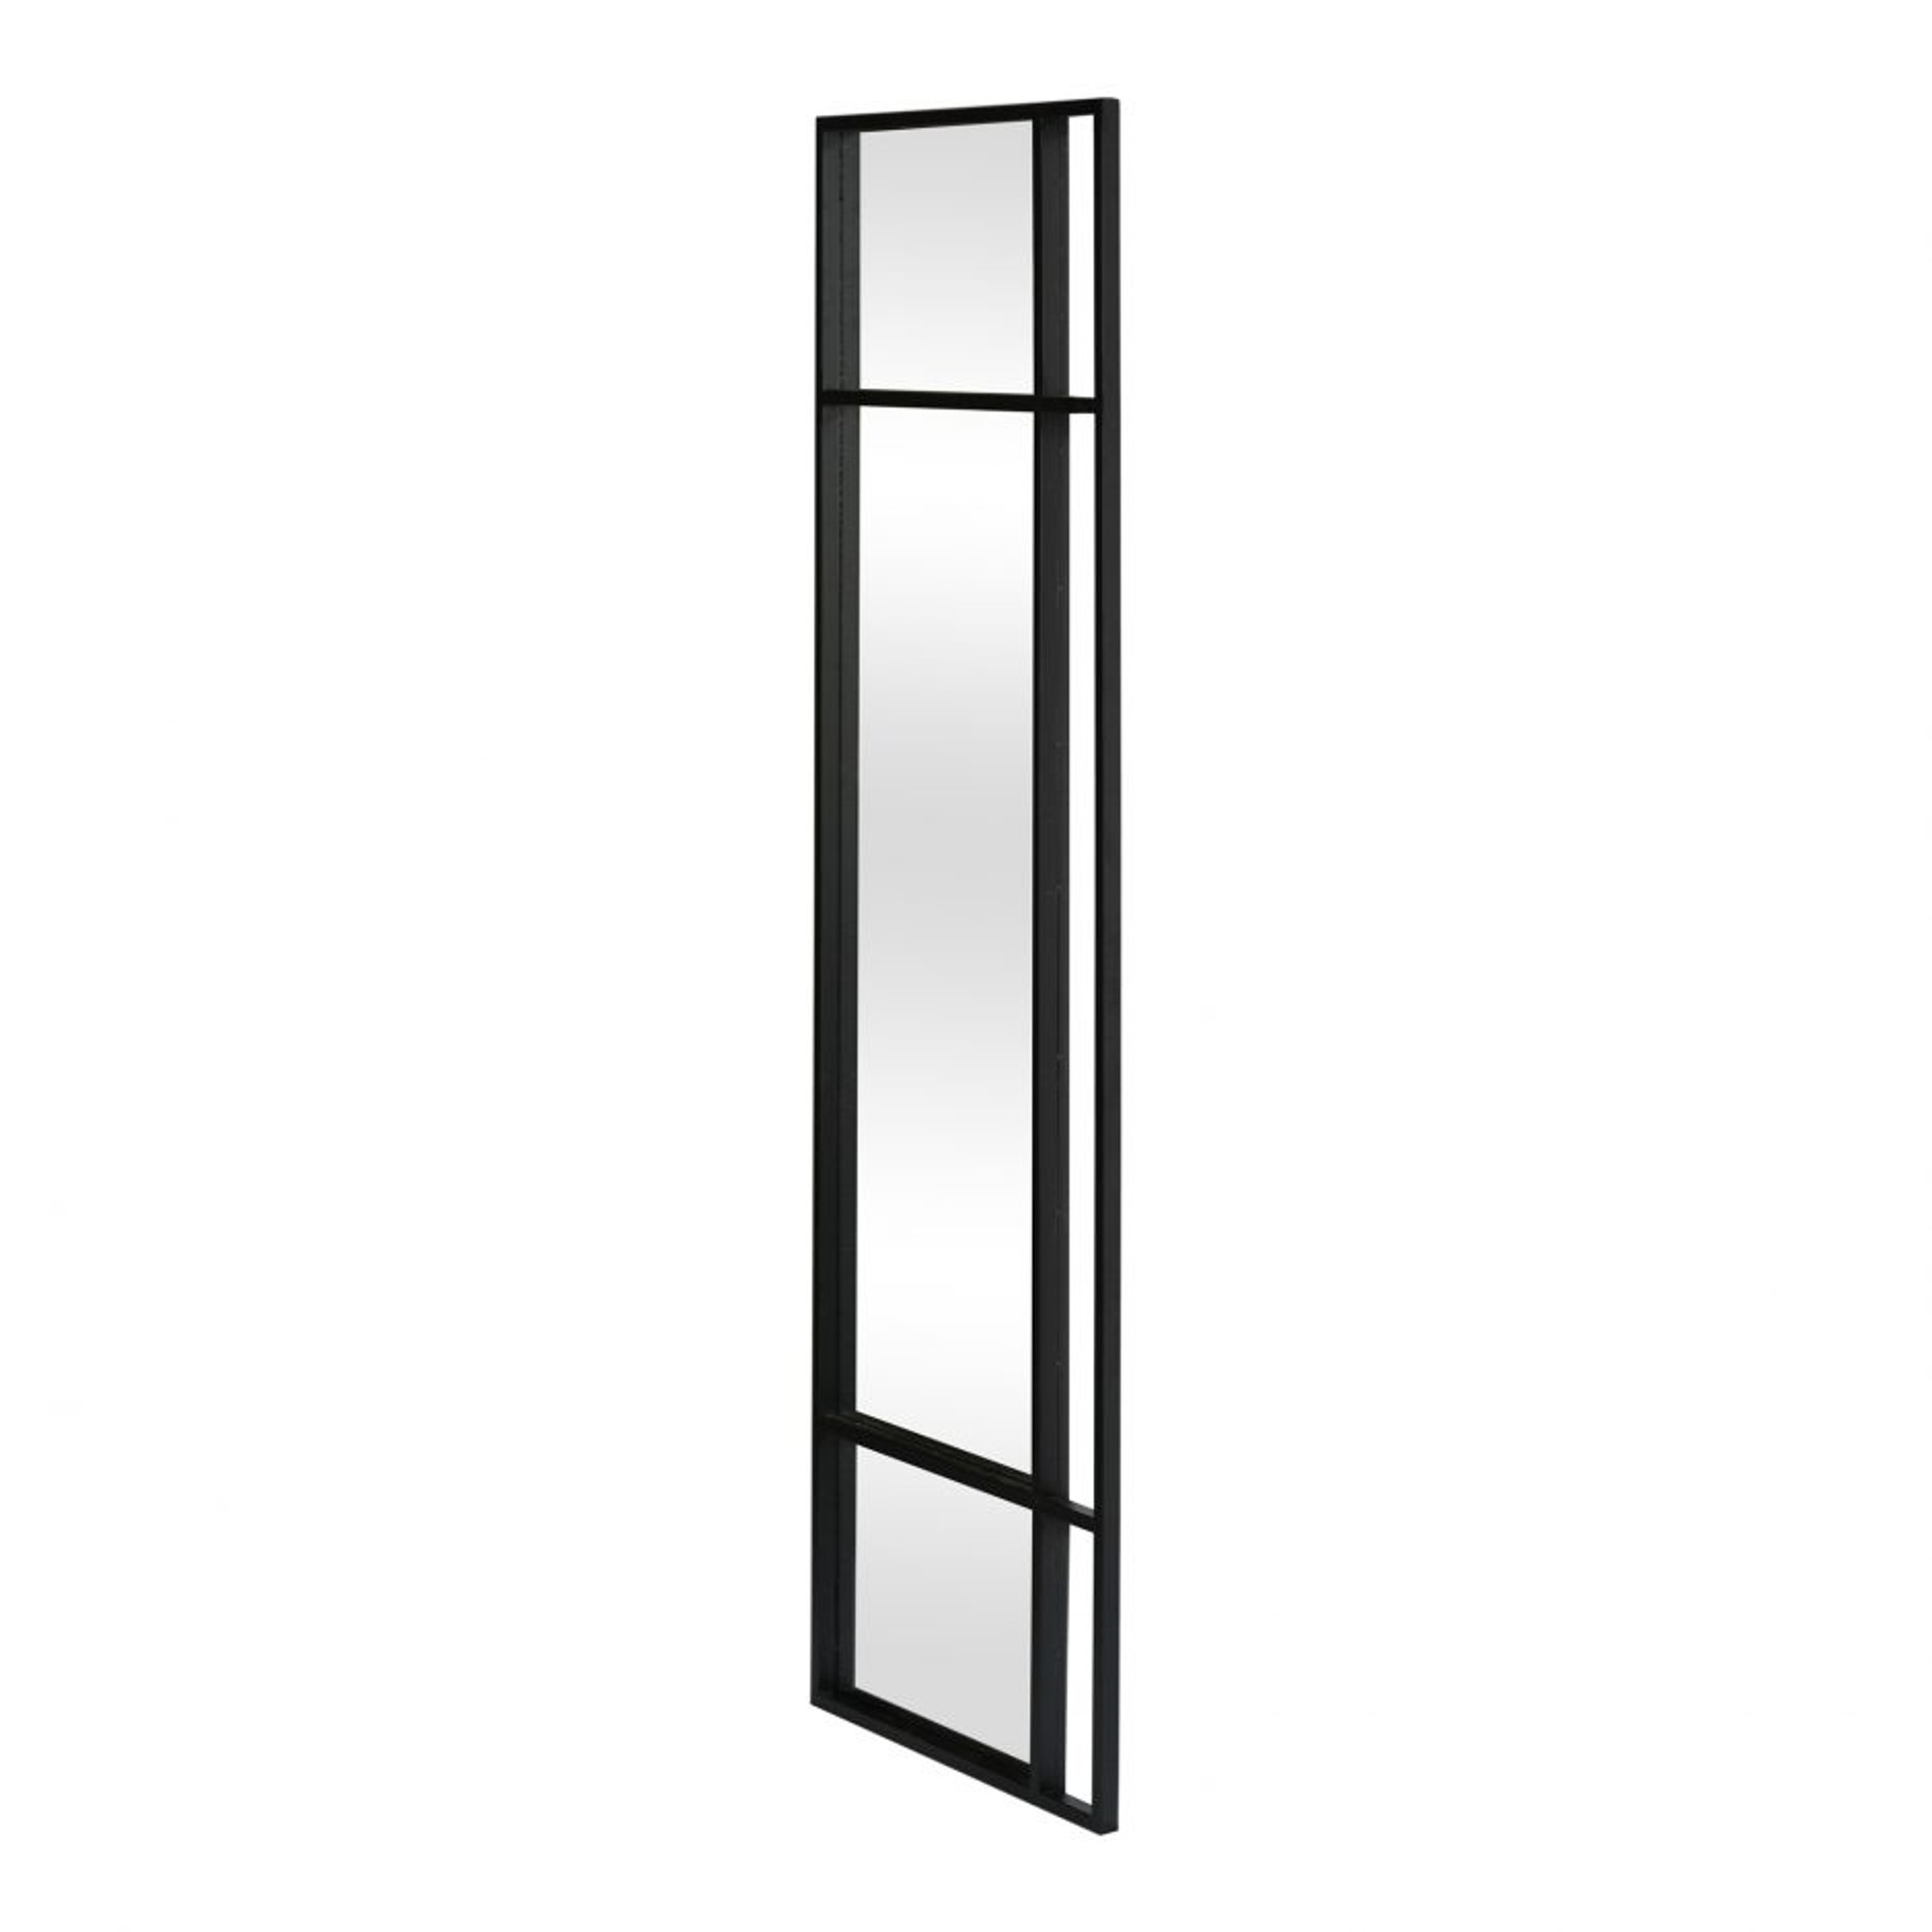 Moe's Home Collection Grid Black Rectangular Wall Mirror modern standing